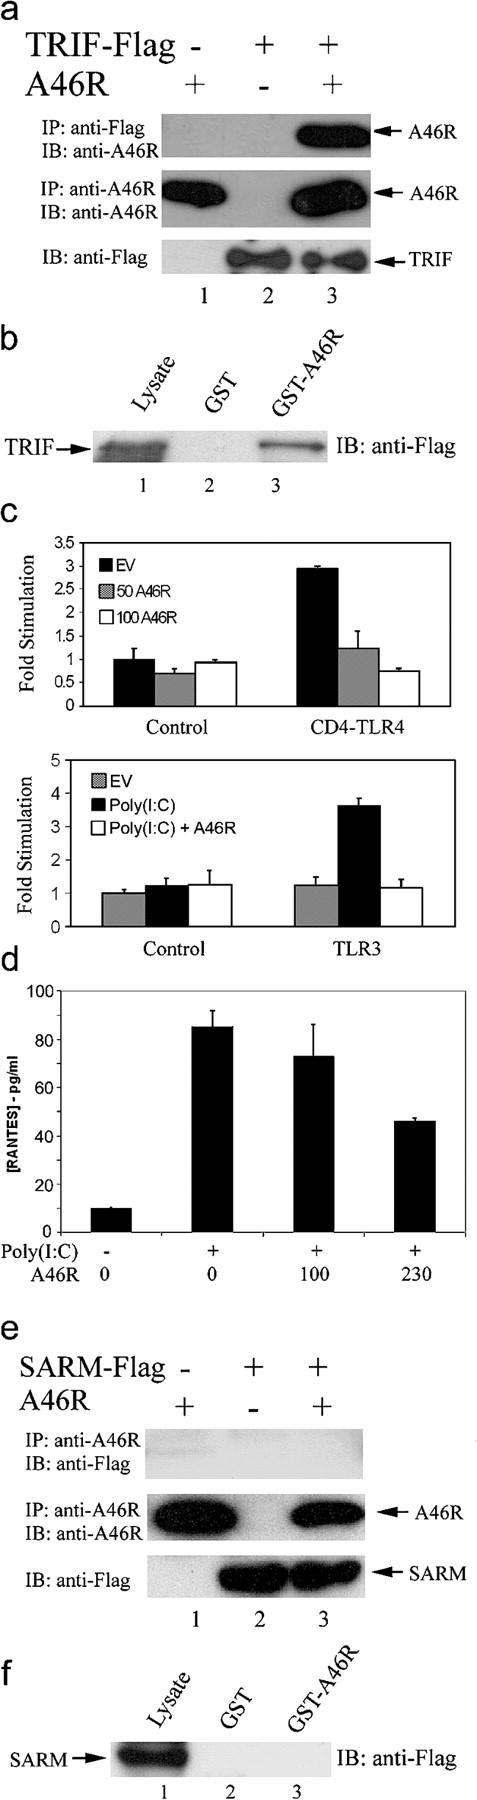 A46R associates with TRIF and inhibits TRIF-dependent signaling and gene induction. (a) HEK 293T cells were transfected with A46R and Flag-TRIF as indicated. After 24 h, lysates were subject to immunoprecipitation, SDS-PAGE, and immunoblotting with the indicated antibodies. (b) HEK 293T cells were transfected with 8 μg Flag-TRIF. After 24 h, lysates were incubated with GST-A46R (lane 3) or GST alone (lane 2), and together with whole cell lysates (lane 1), were analyzed by SDS-PAGE and immunoblotting with anti-Flag Ab. (c) HEK 293 cells were transfected with the IRF3 reporter plasmids (as described in Materials and methods) with either 50 ng CD4-TLR4 (top) or 0.5 ng TLR3 (bottom) and 50–150 ng A46R or pcDNA3.1 (EV) as indicated. (bottom) Cells were stimulated with 25 μg/ml poly(I:C) 6 h before harvesting. Luciferase activity was measured after 24 h. (d) HEK-TLR3 cells were transfected with the indicated amounts (ng) of A46R 24 h before stimulation with 25 μg/ml poly(I:C), and 24 h after stimulation supernatants were harvested and assayed for RANTES by ELISA. (e and f) As in a and b, except Flag-SARM was transfected instead of Flag-TRIF.